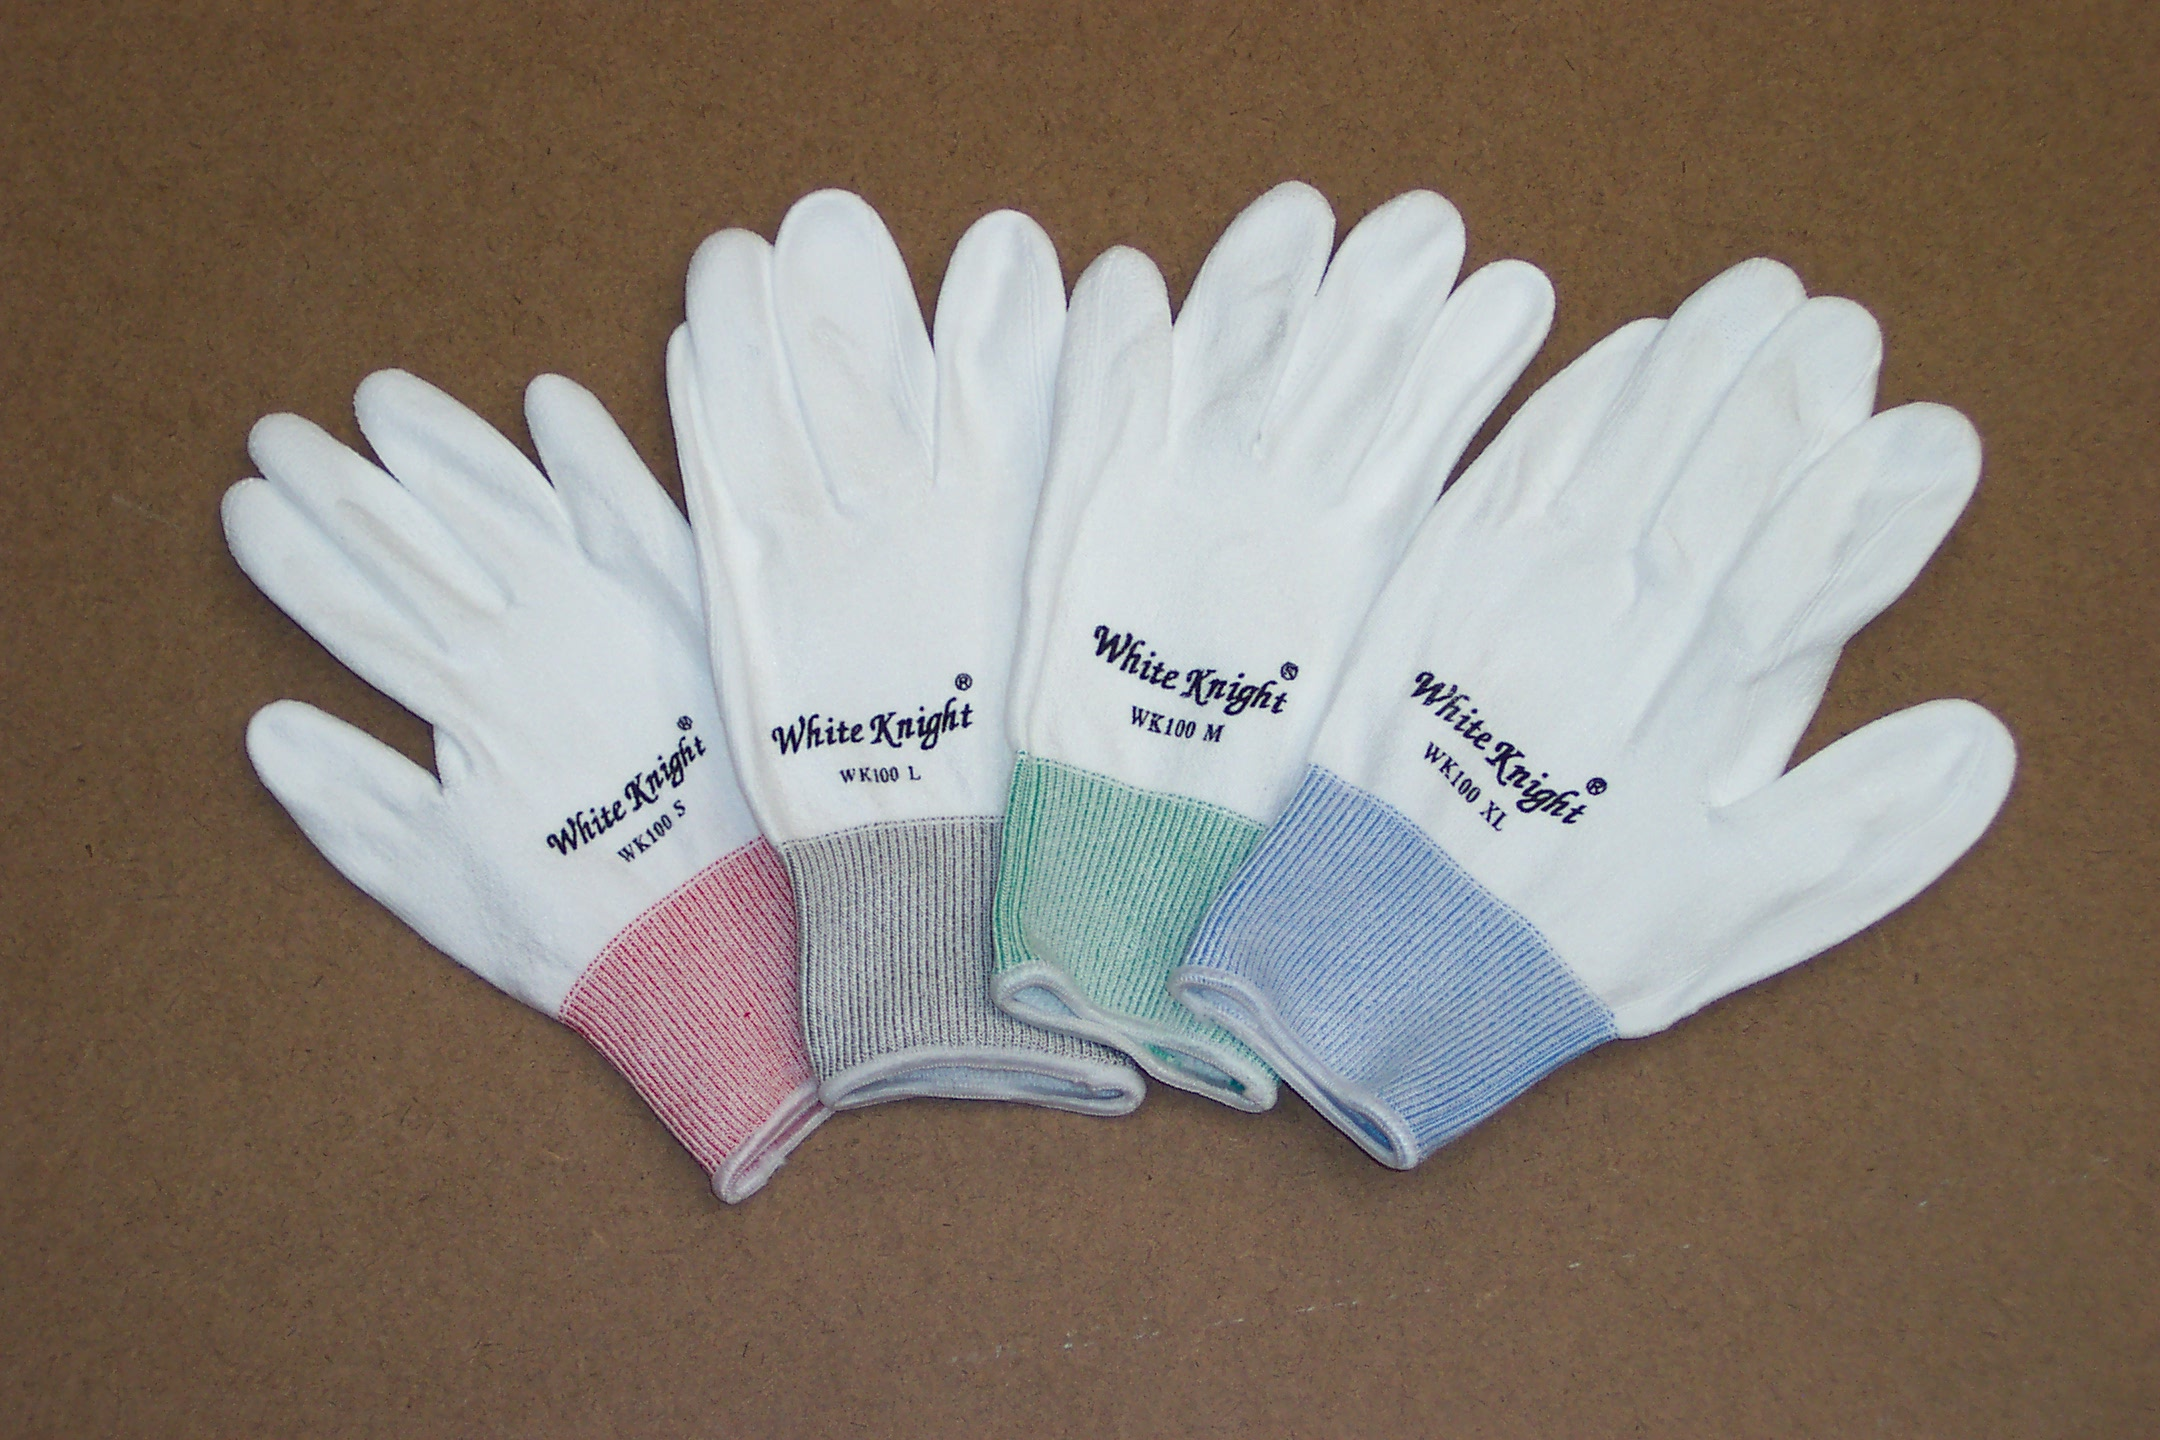 White Knight gloves